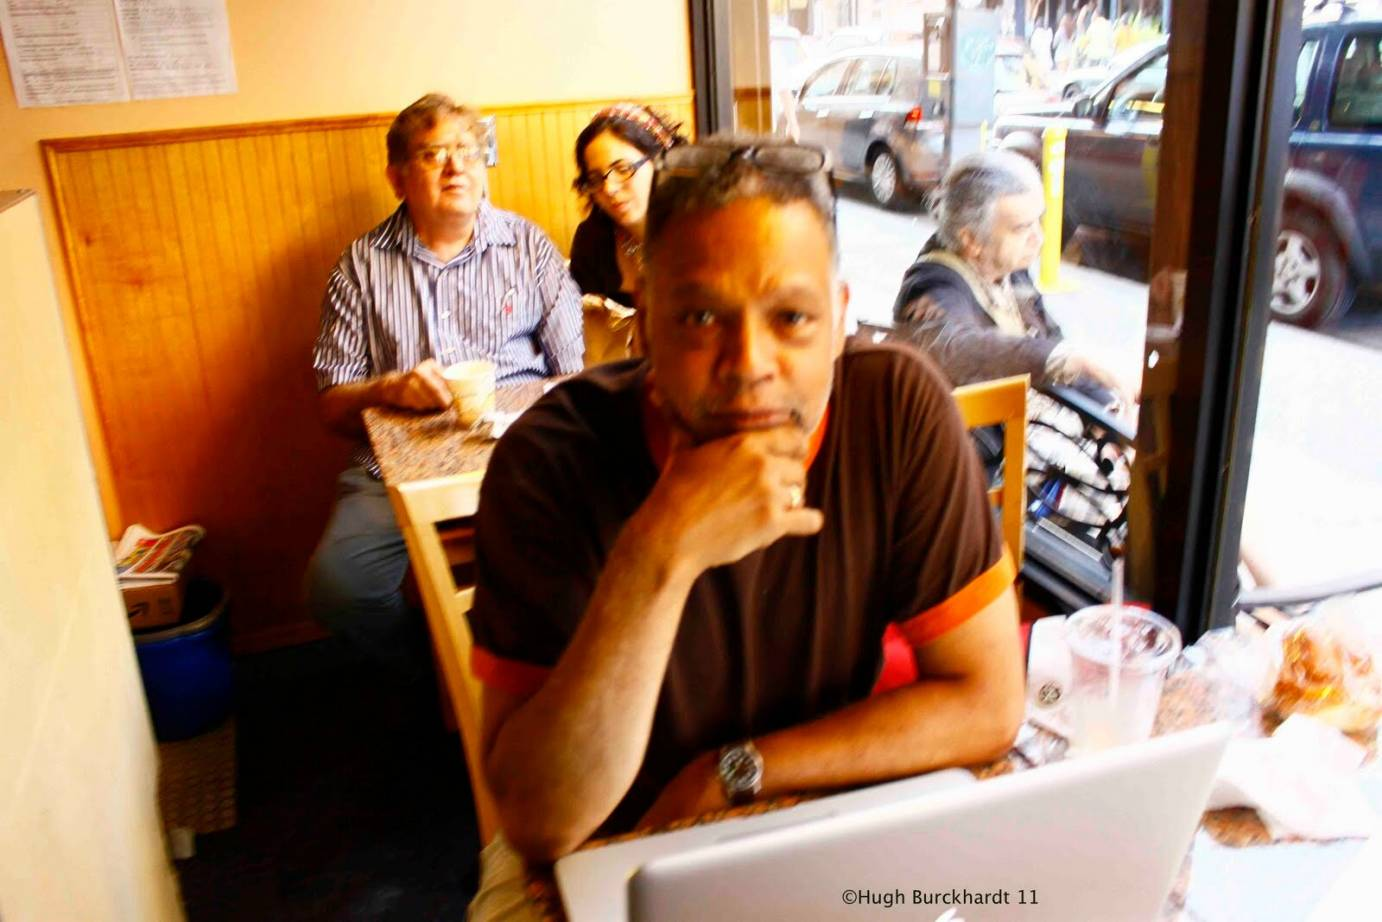 Ishmael Houston-Jones working on a laptop at a New York coffee shop.